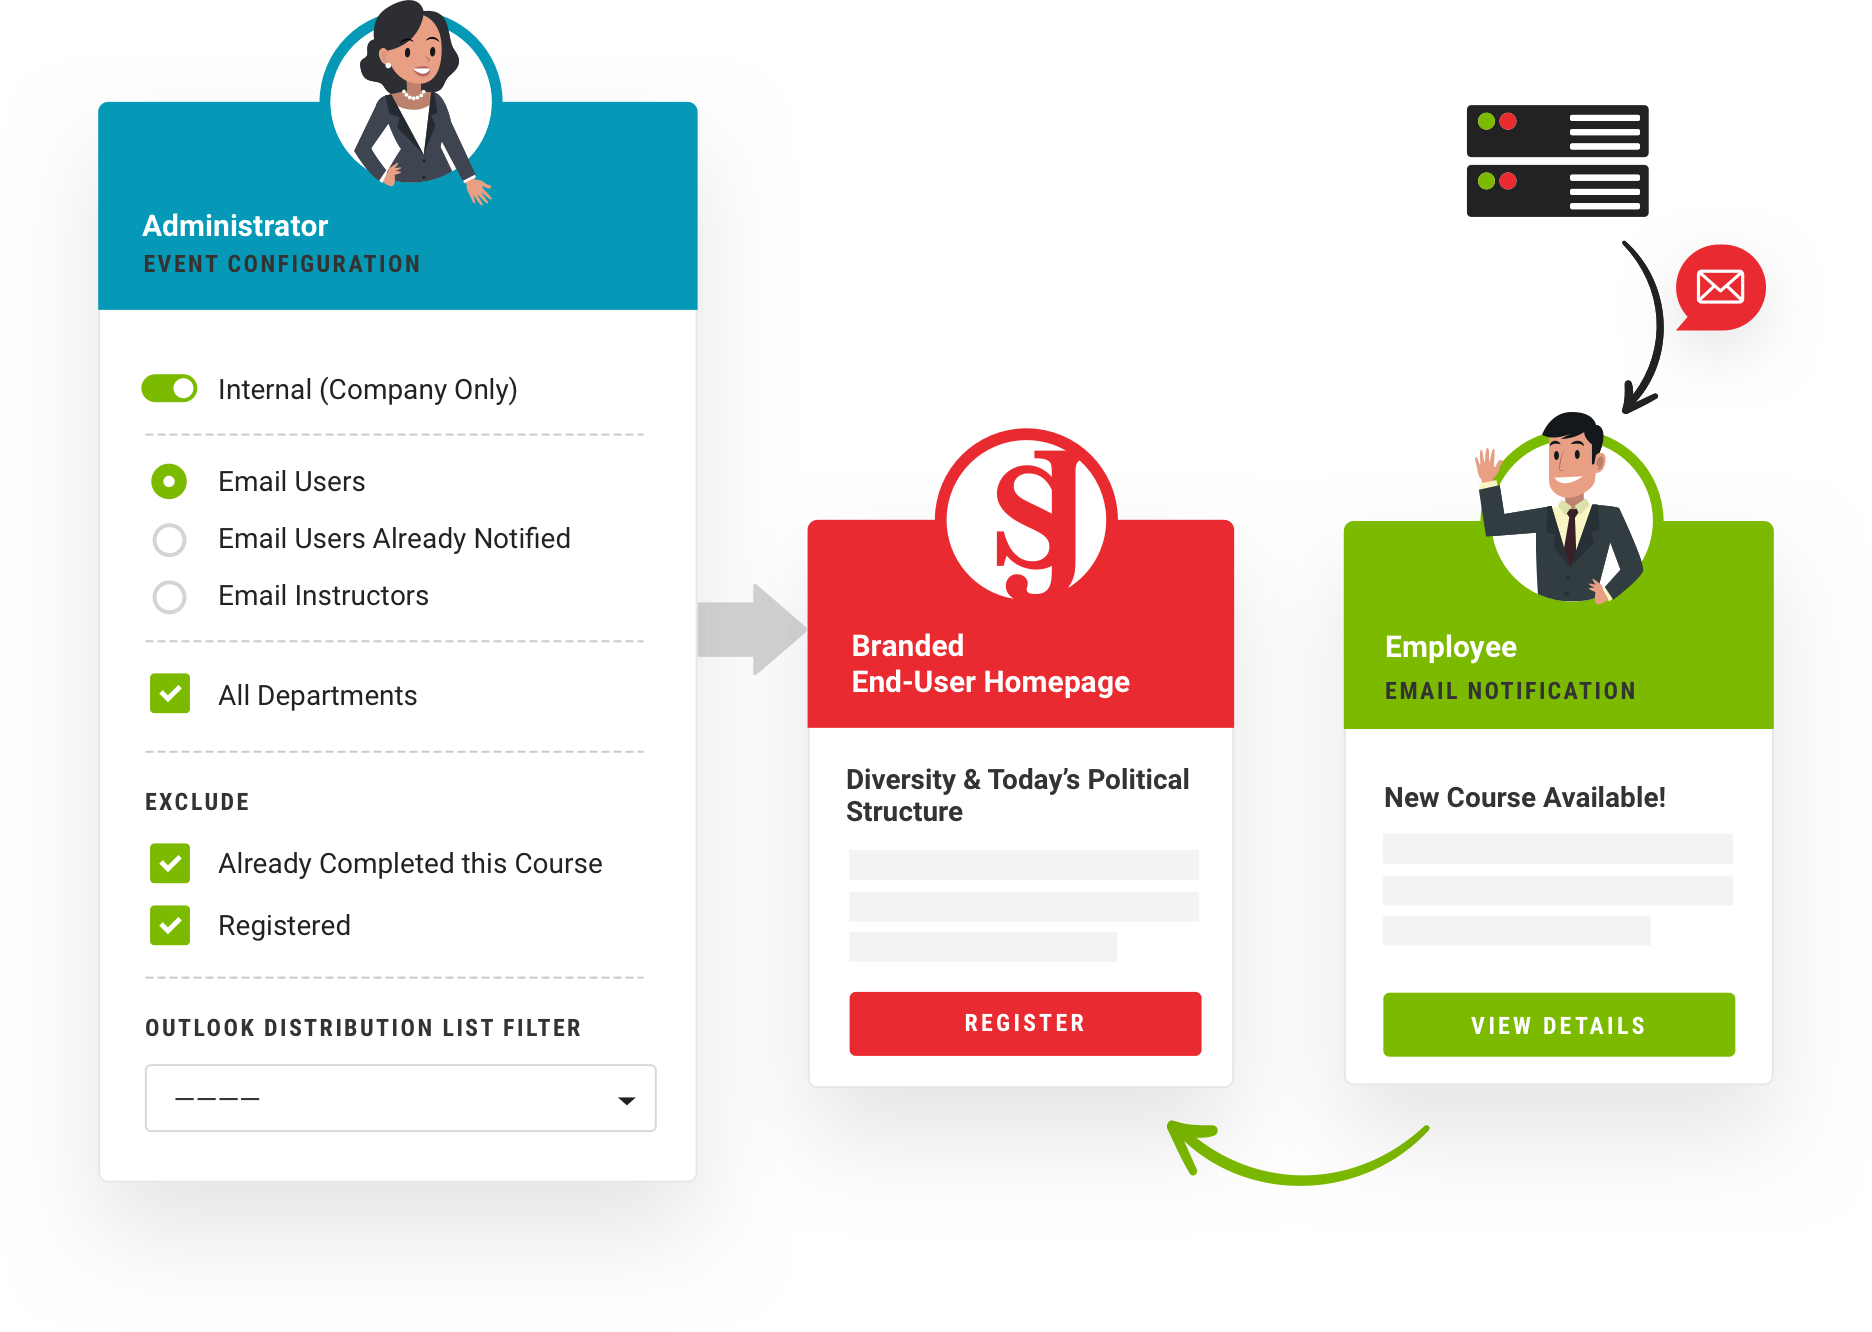 Deploy courses and events with confidence